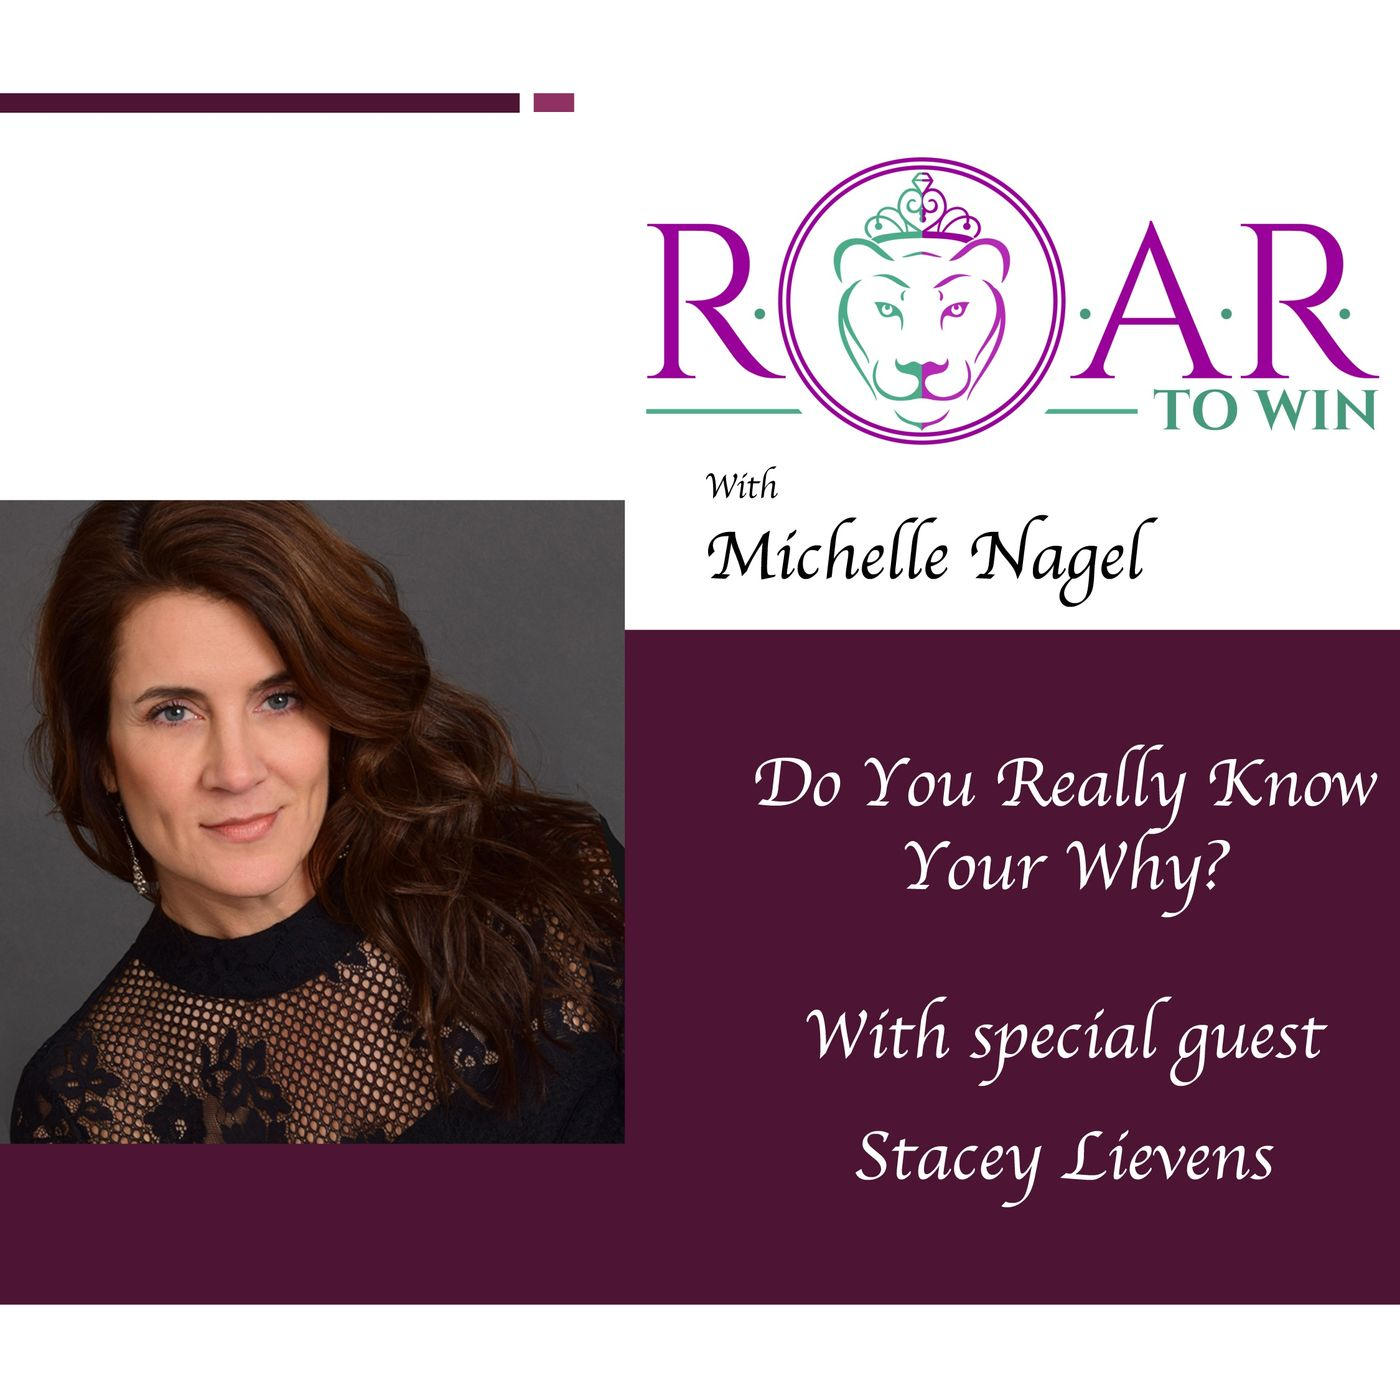 Do You Really Know Your Why? with Stacey Lievens